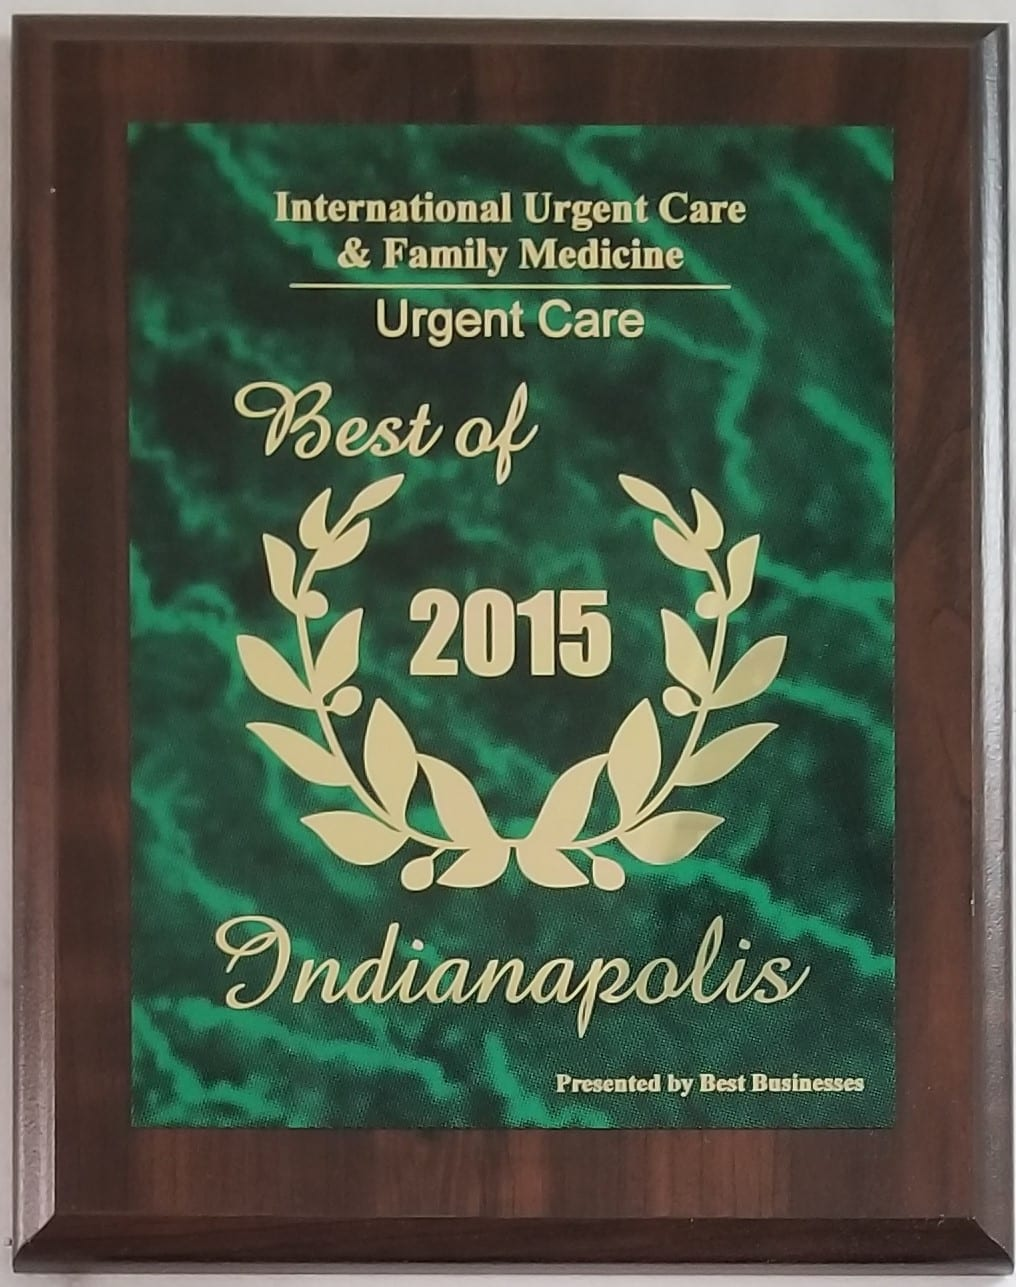 Best of Indianapolis, 2015